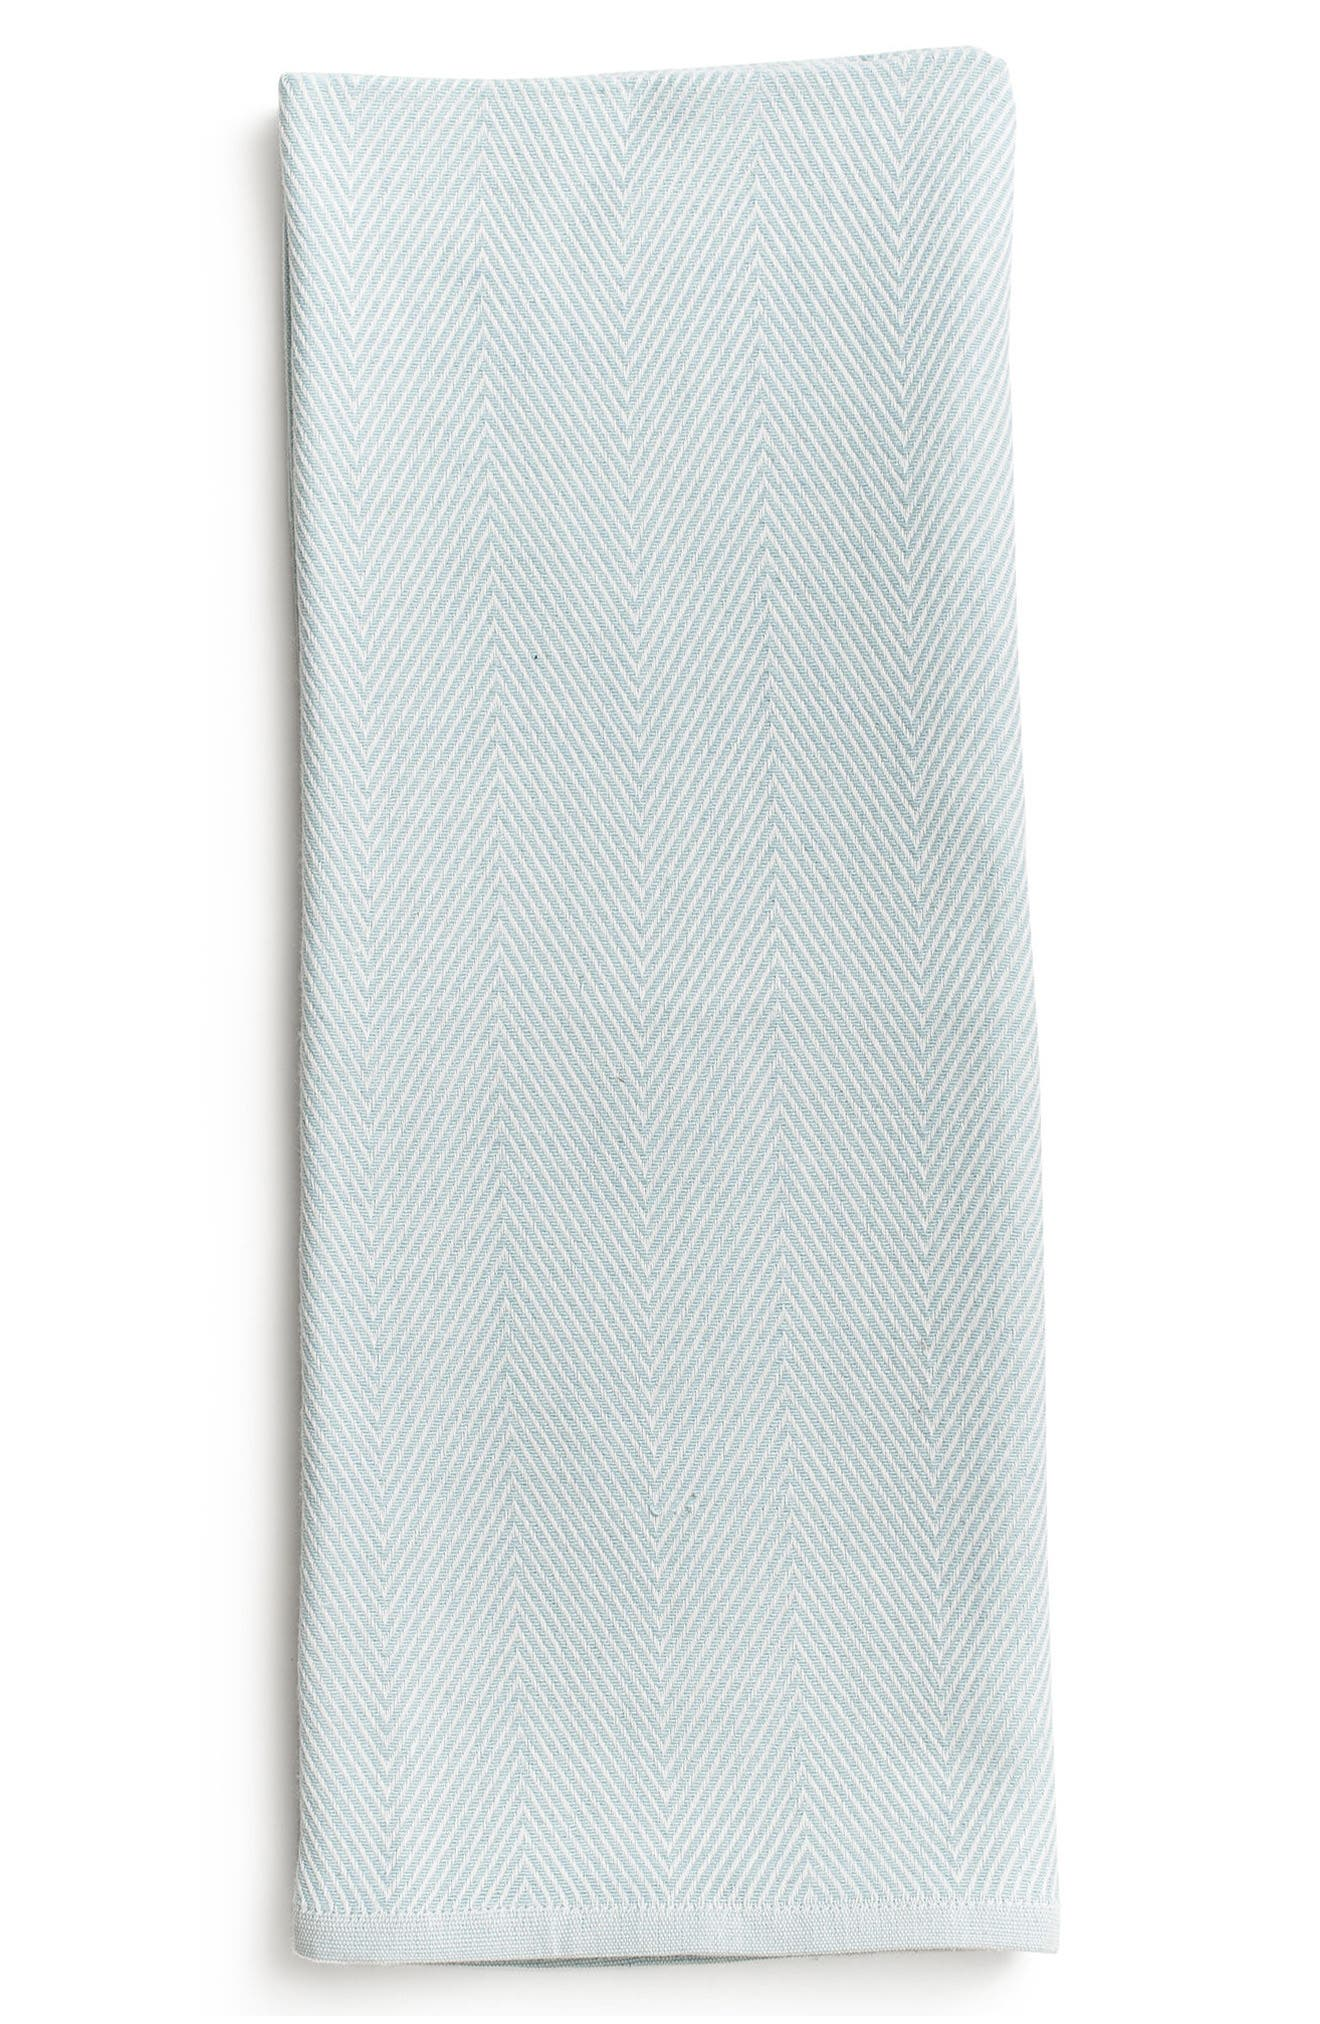 Herringbone Organic Cotton Blanket,                             Main thumbnail 1, color,                             Blue